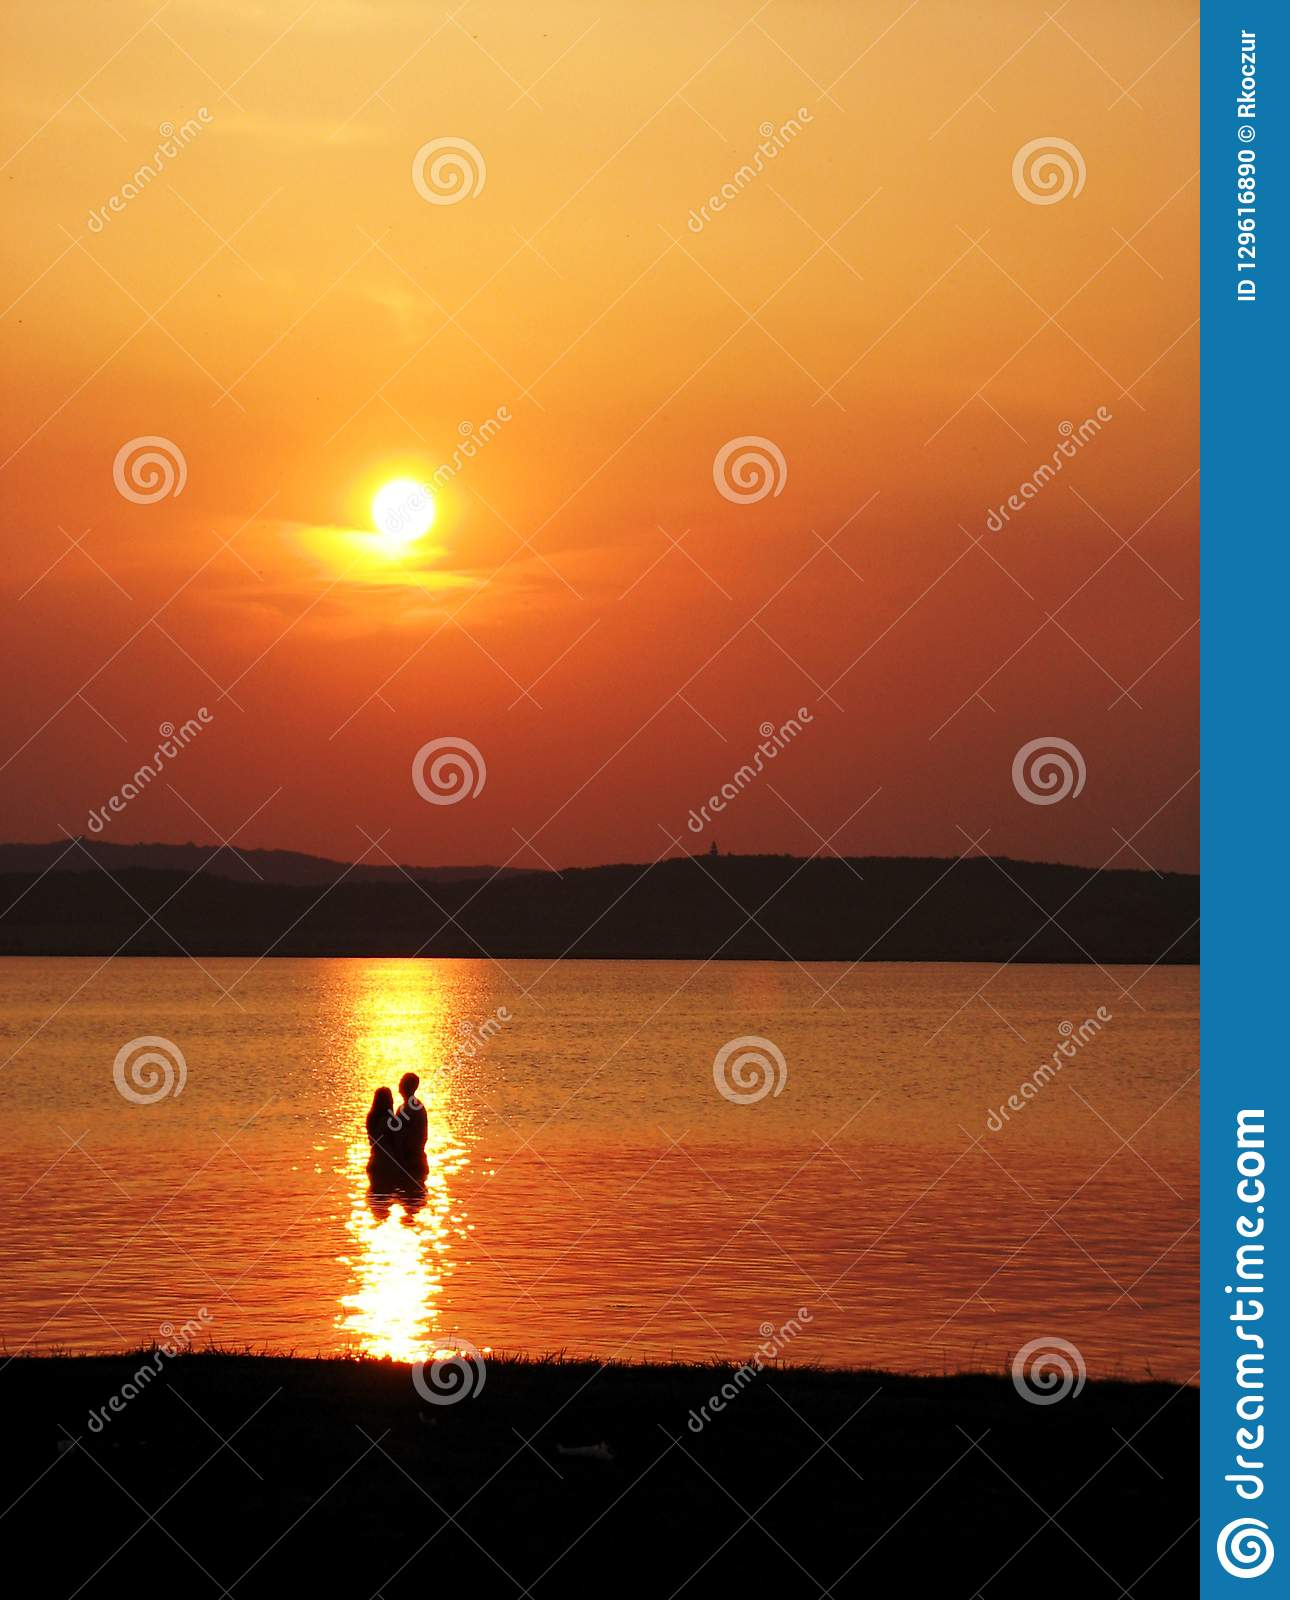 Couple standing in the water at sunset